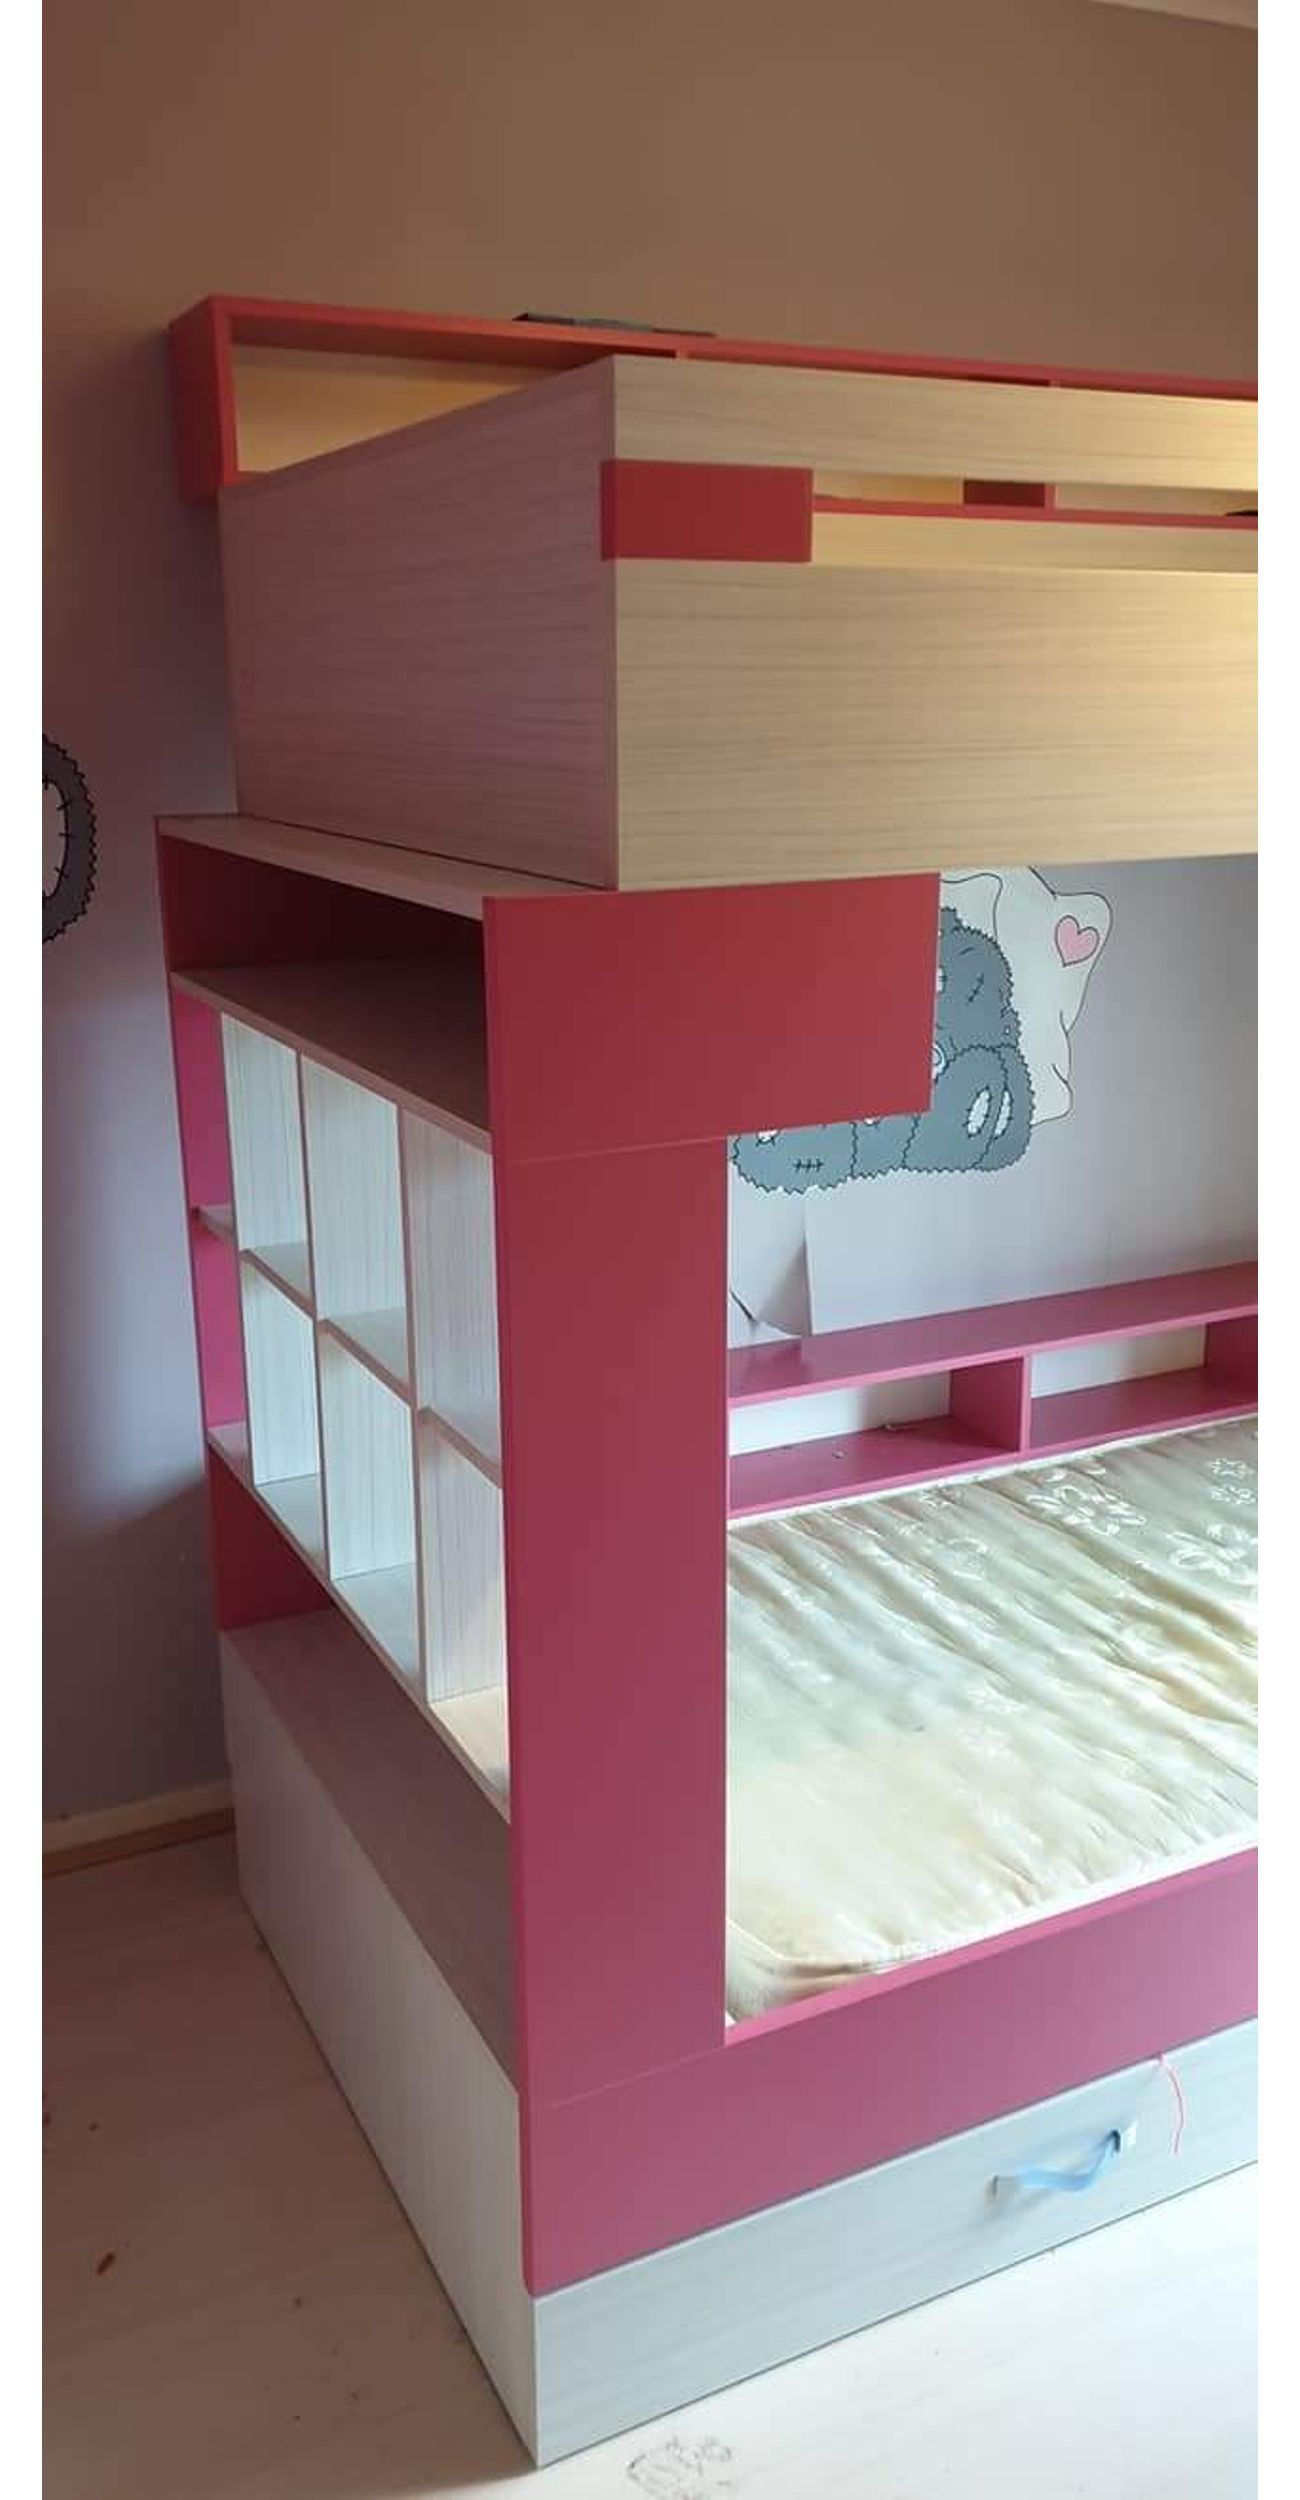 Bunk Beds On Sale 2021 Bunk Beds For Sale Used Bunk Beds Beds For Sale